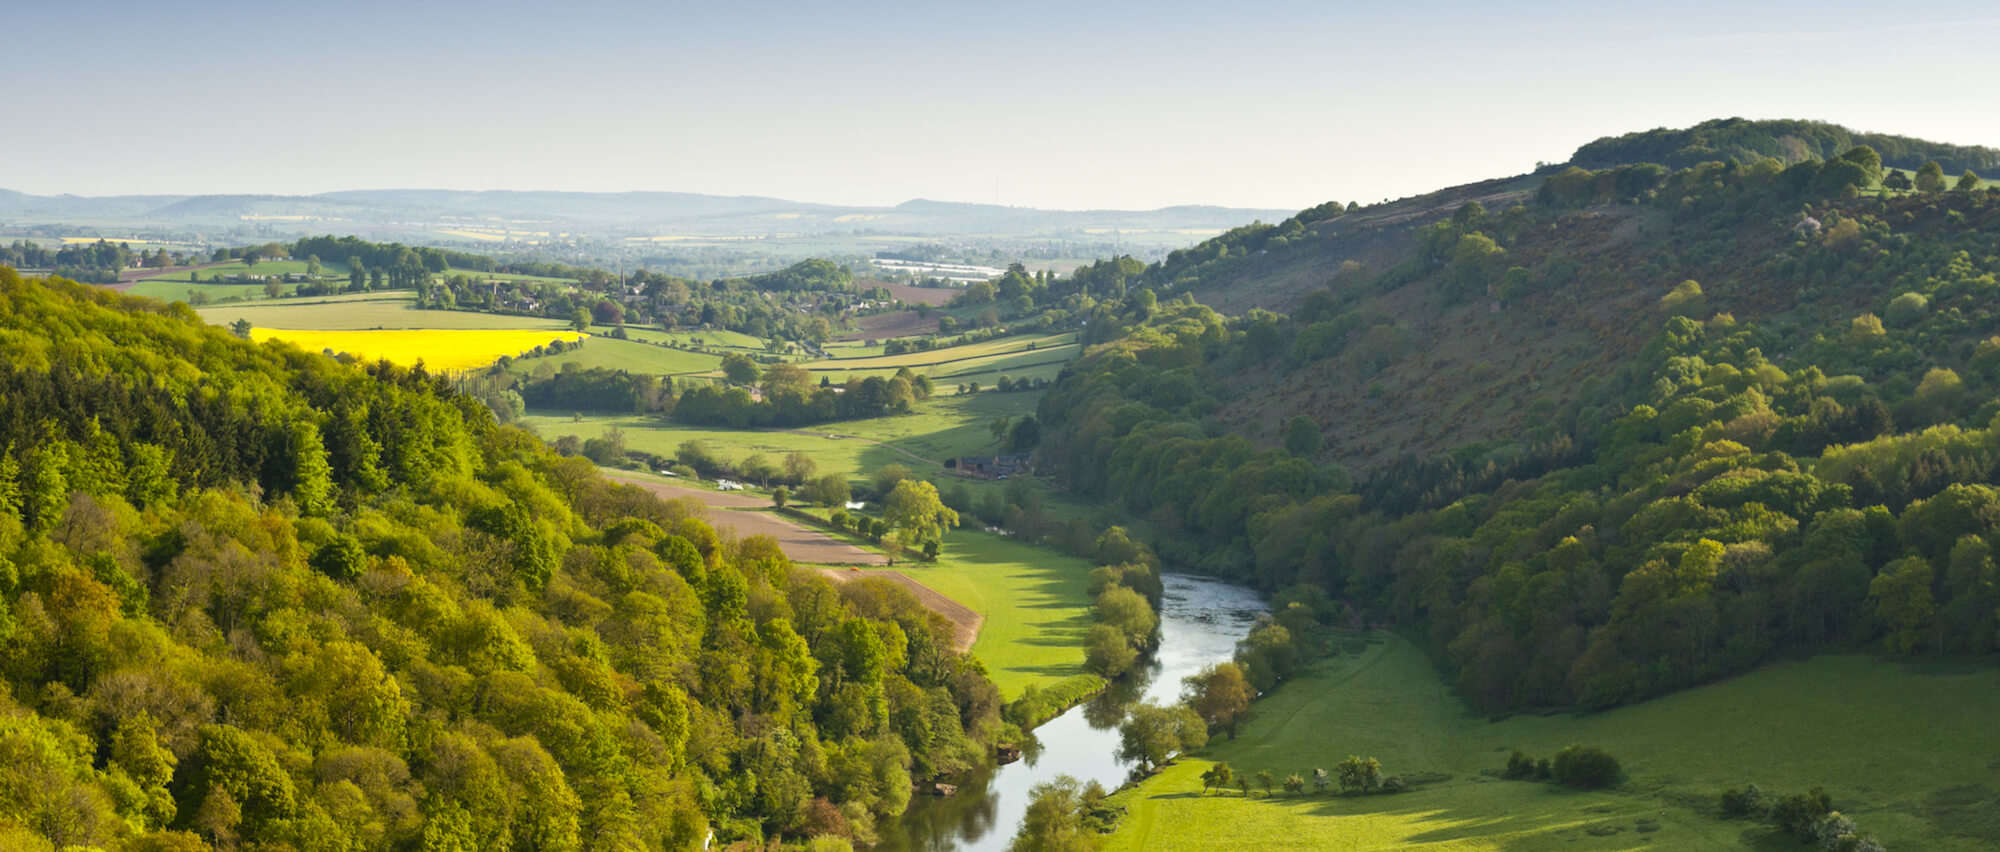 Large scale shot of the Wye ValleyScenery